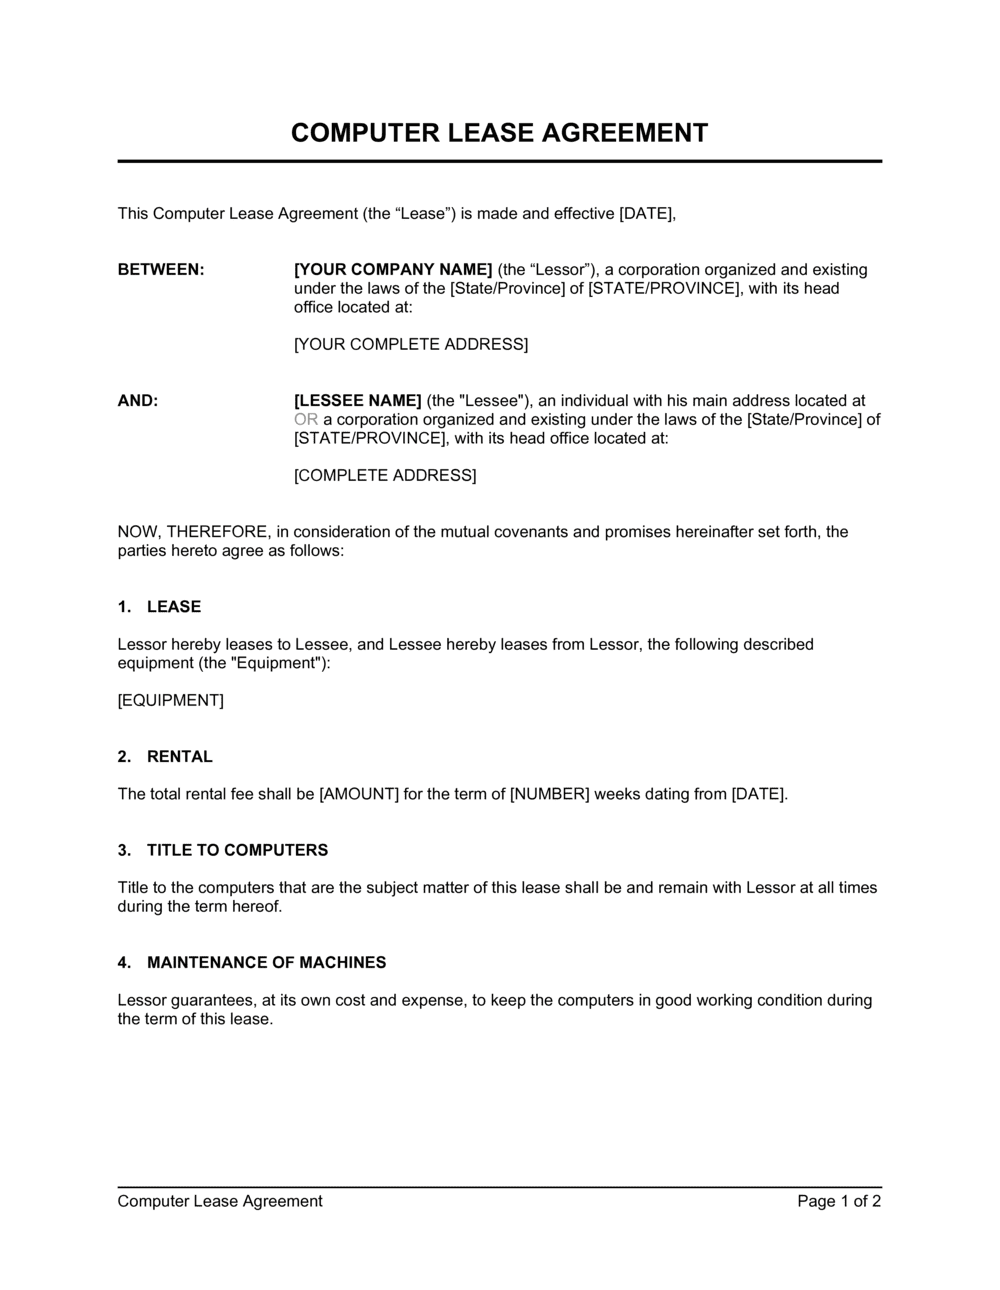 Business-in-a-Box's Computer Lease Agreement Template